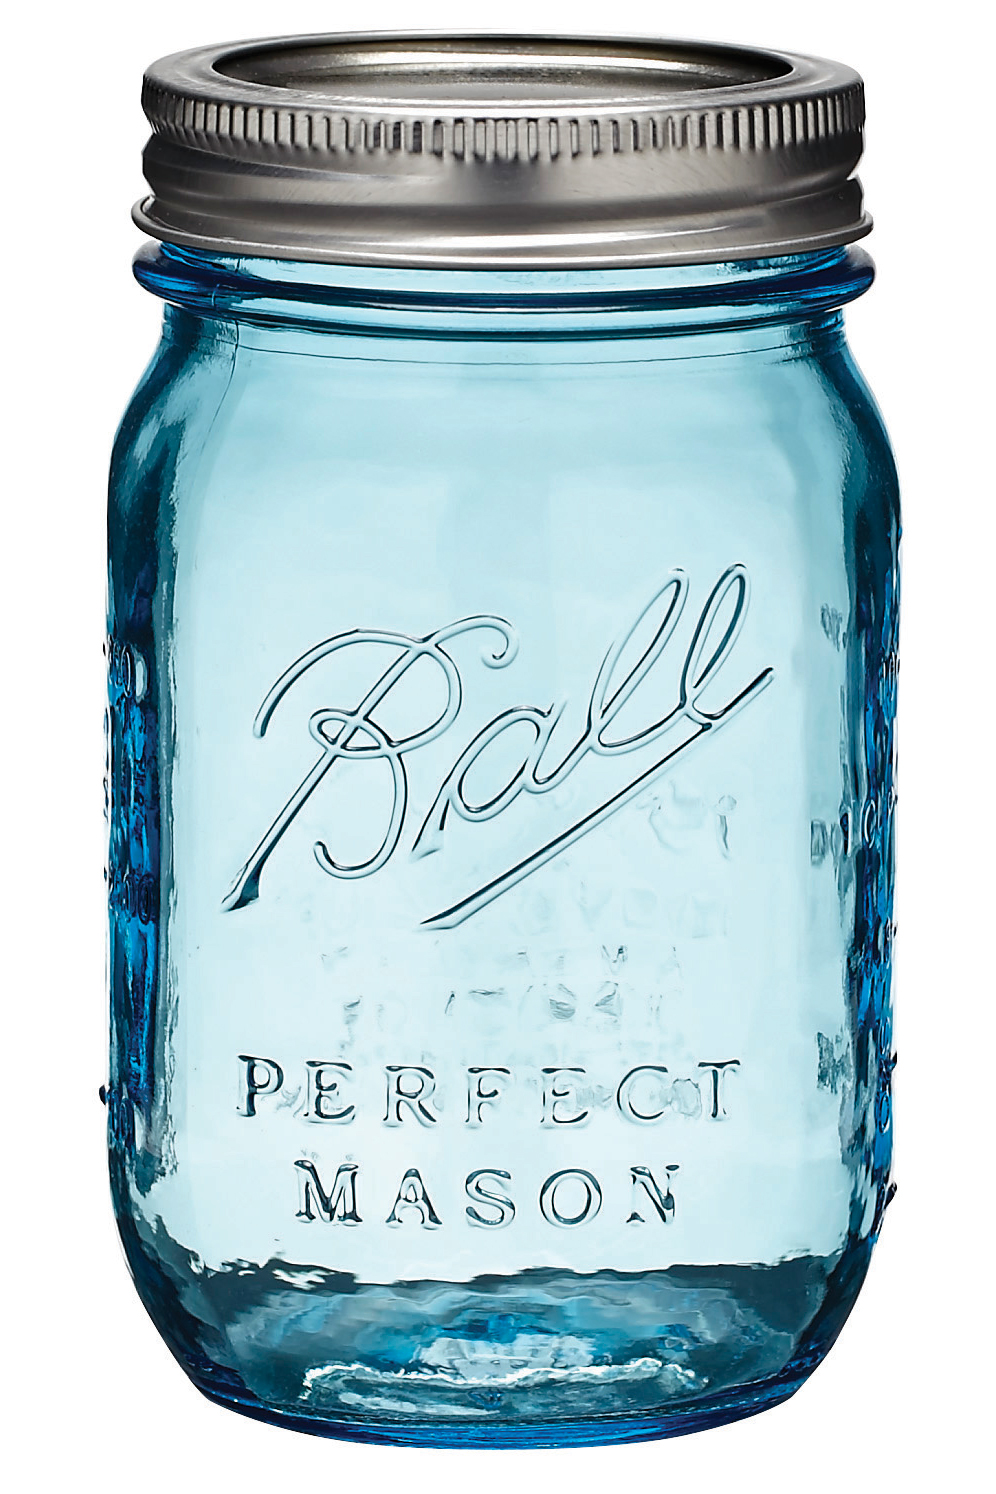 Blue Mason Jar Drawing The Humble Mason Jar